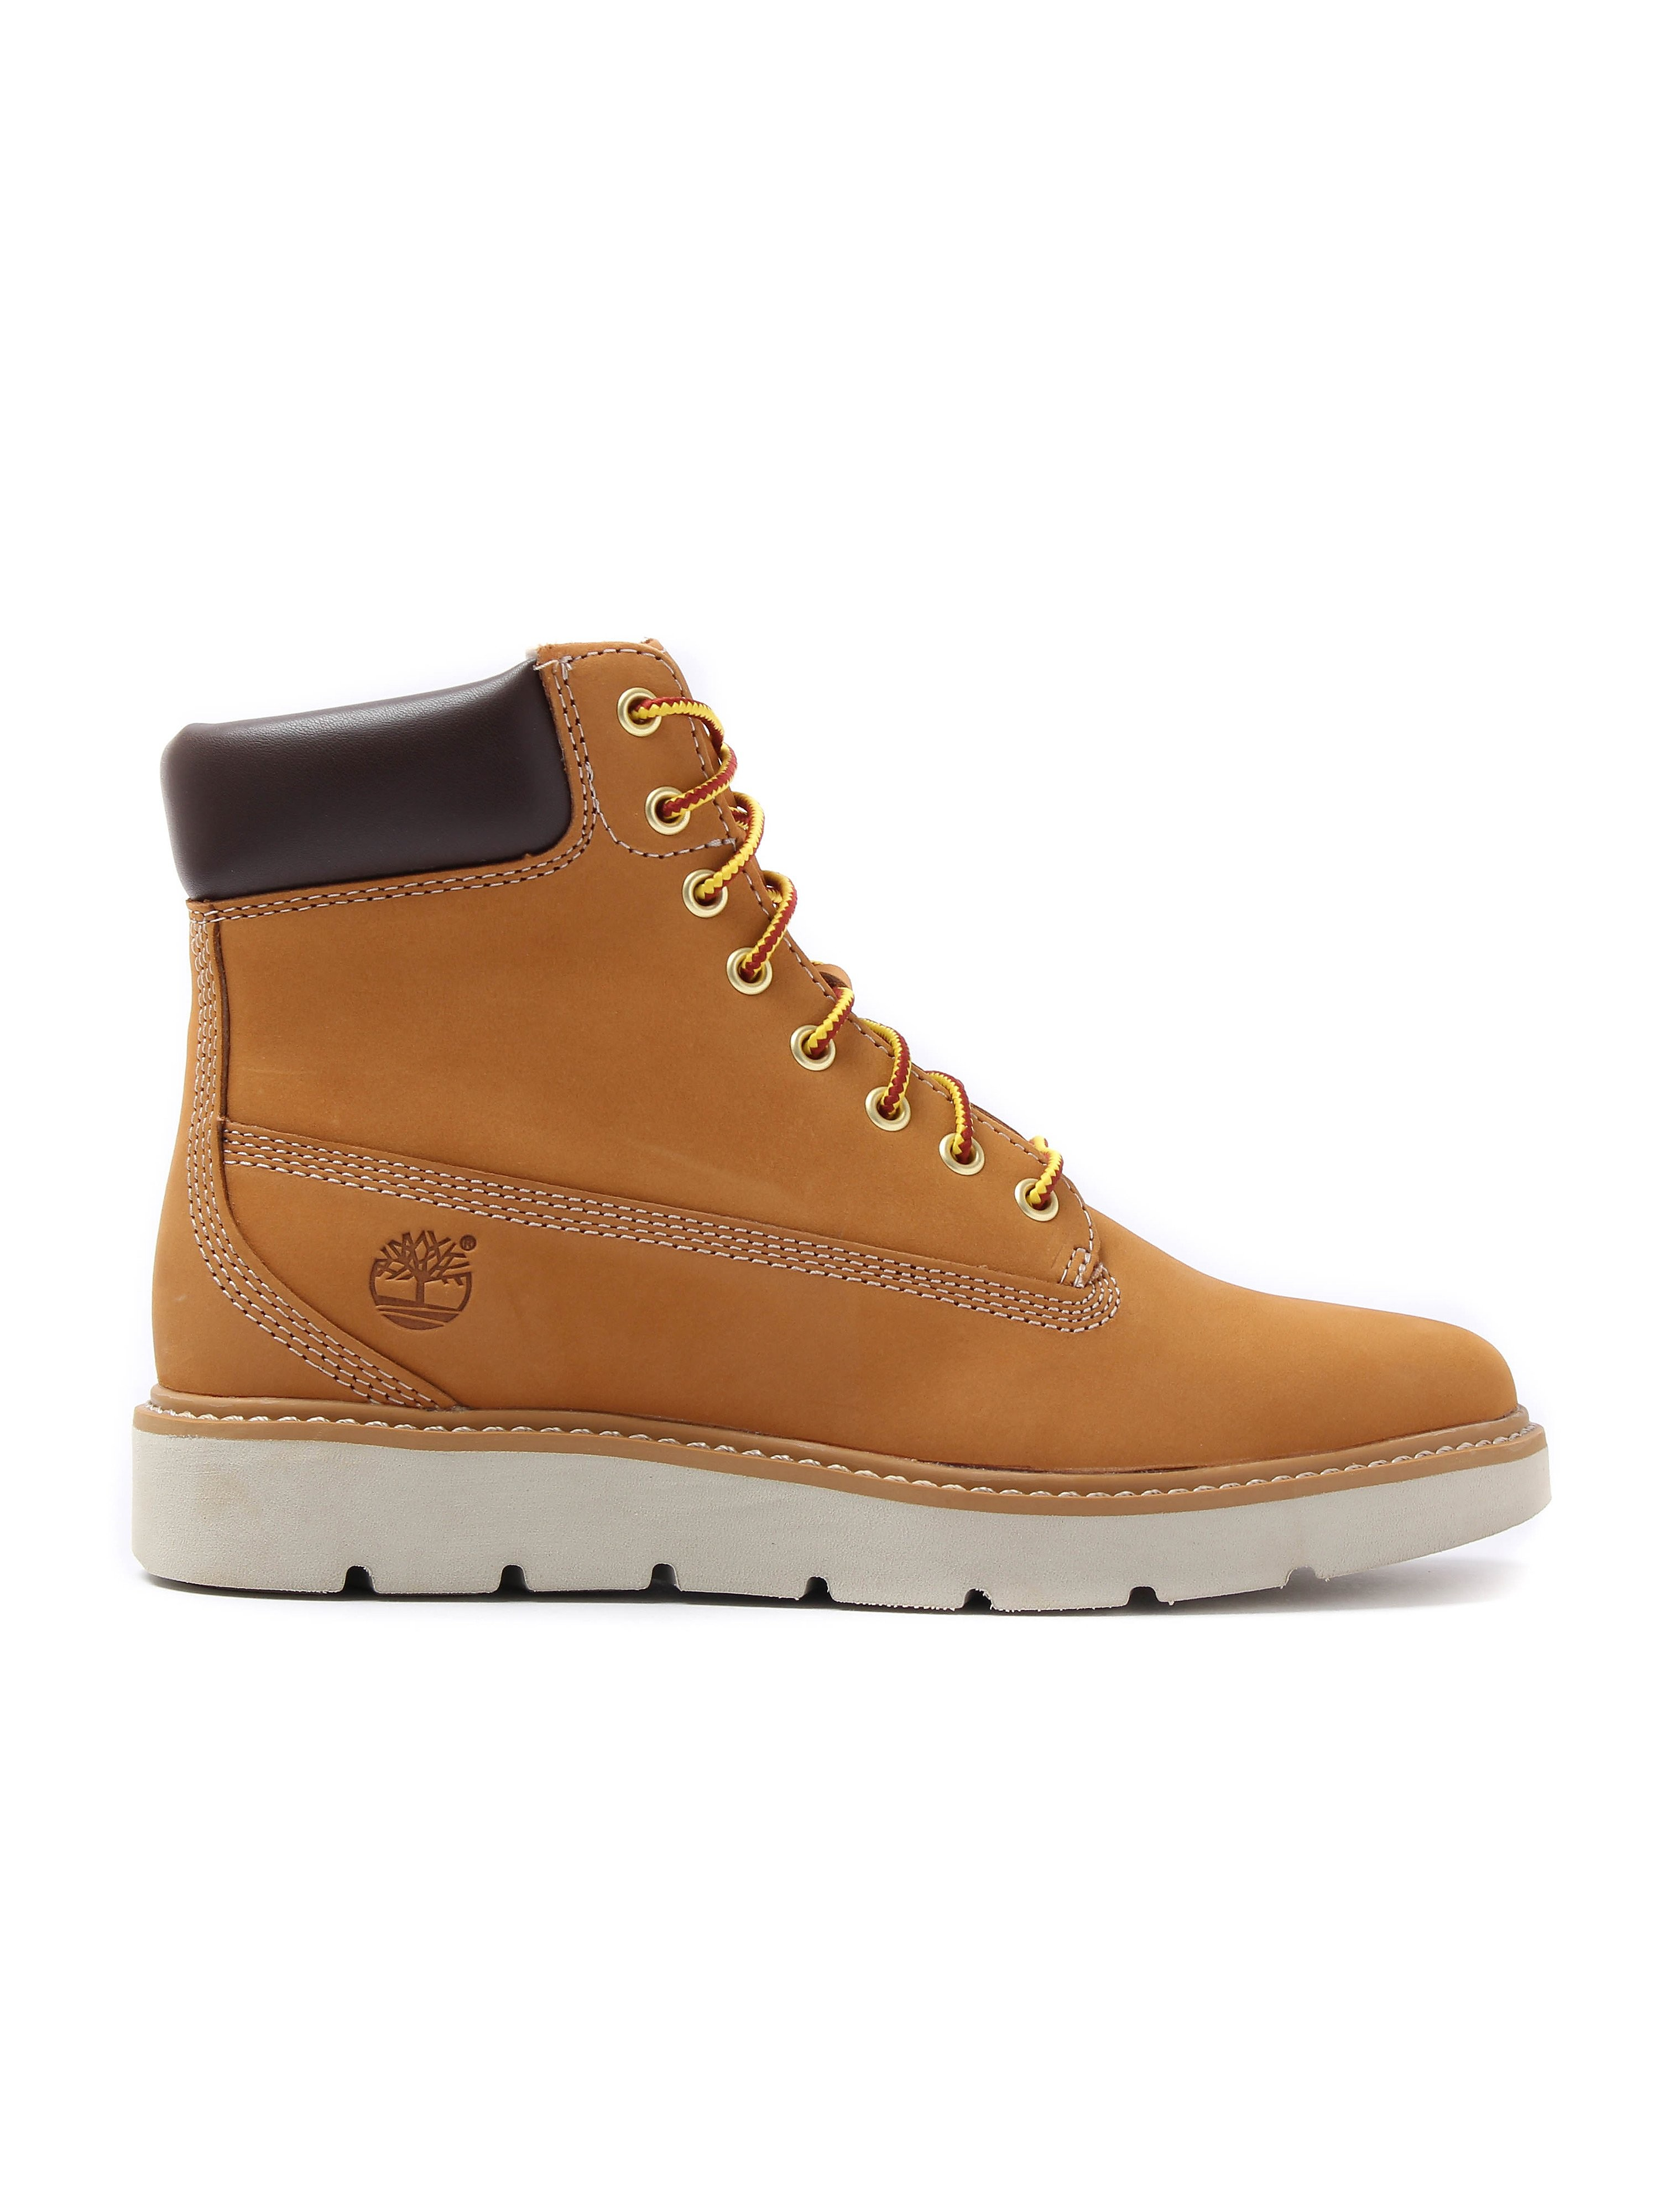 Timberland Women's Kenniston 6In Lace Up Leather Boots - Wheat